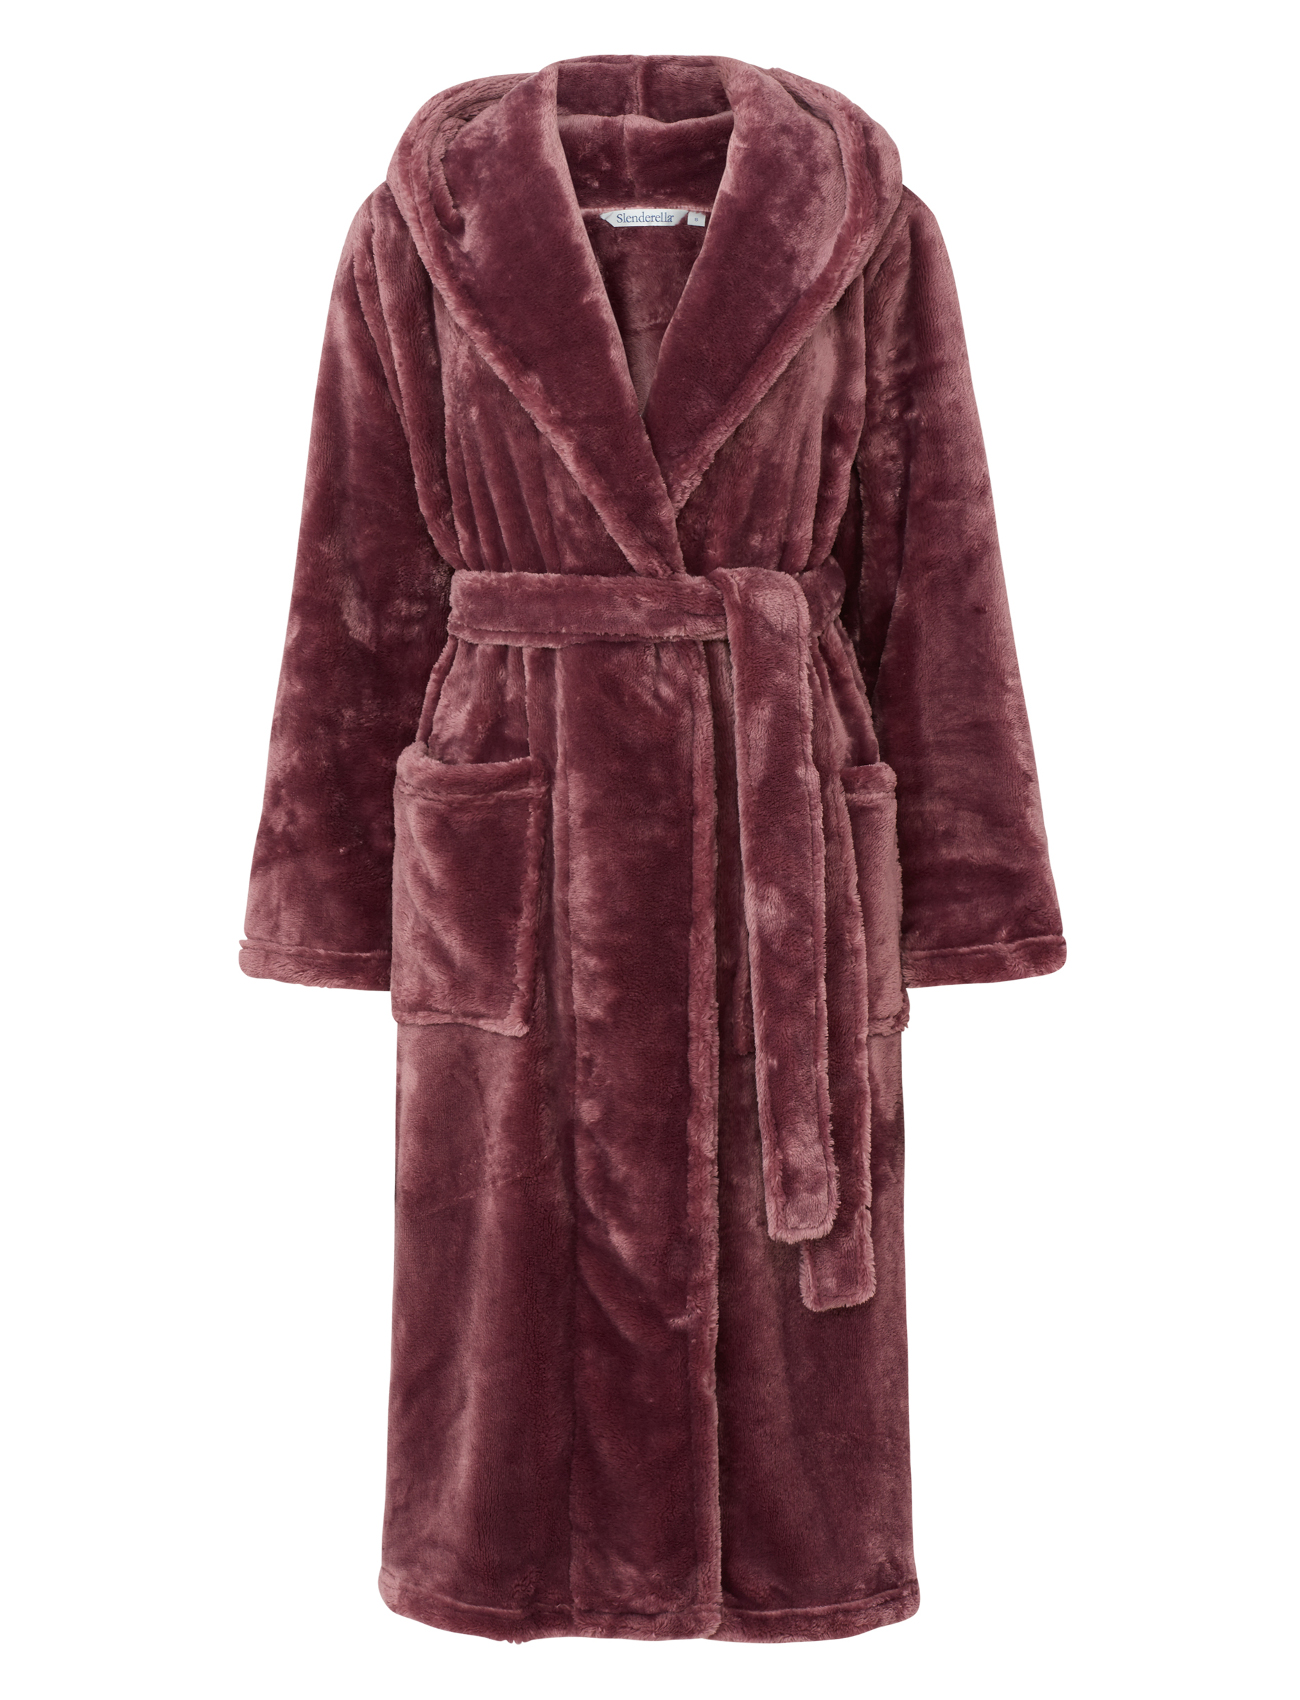 Dressing Gown Luxury Super Soft Thick Fleece Ladies Hooded